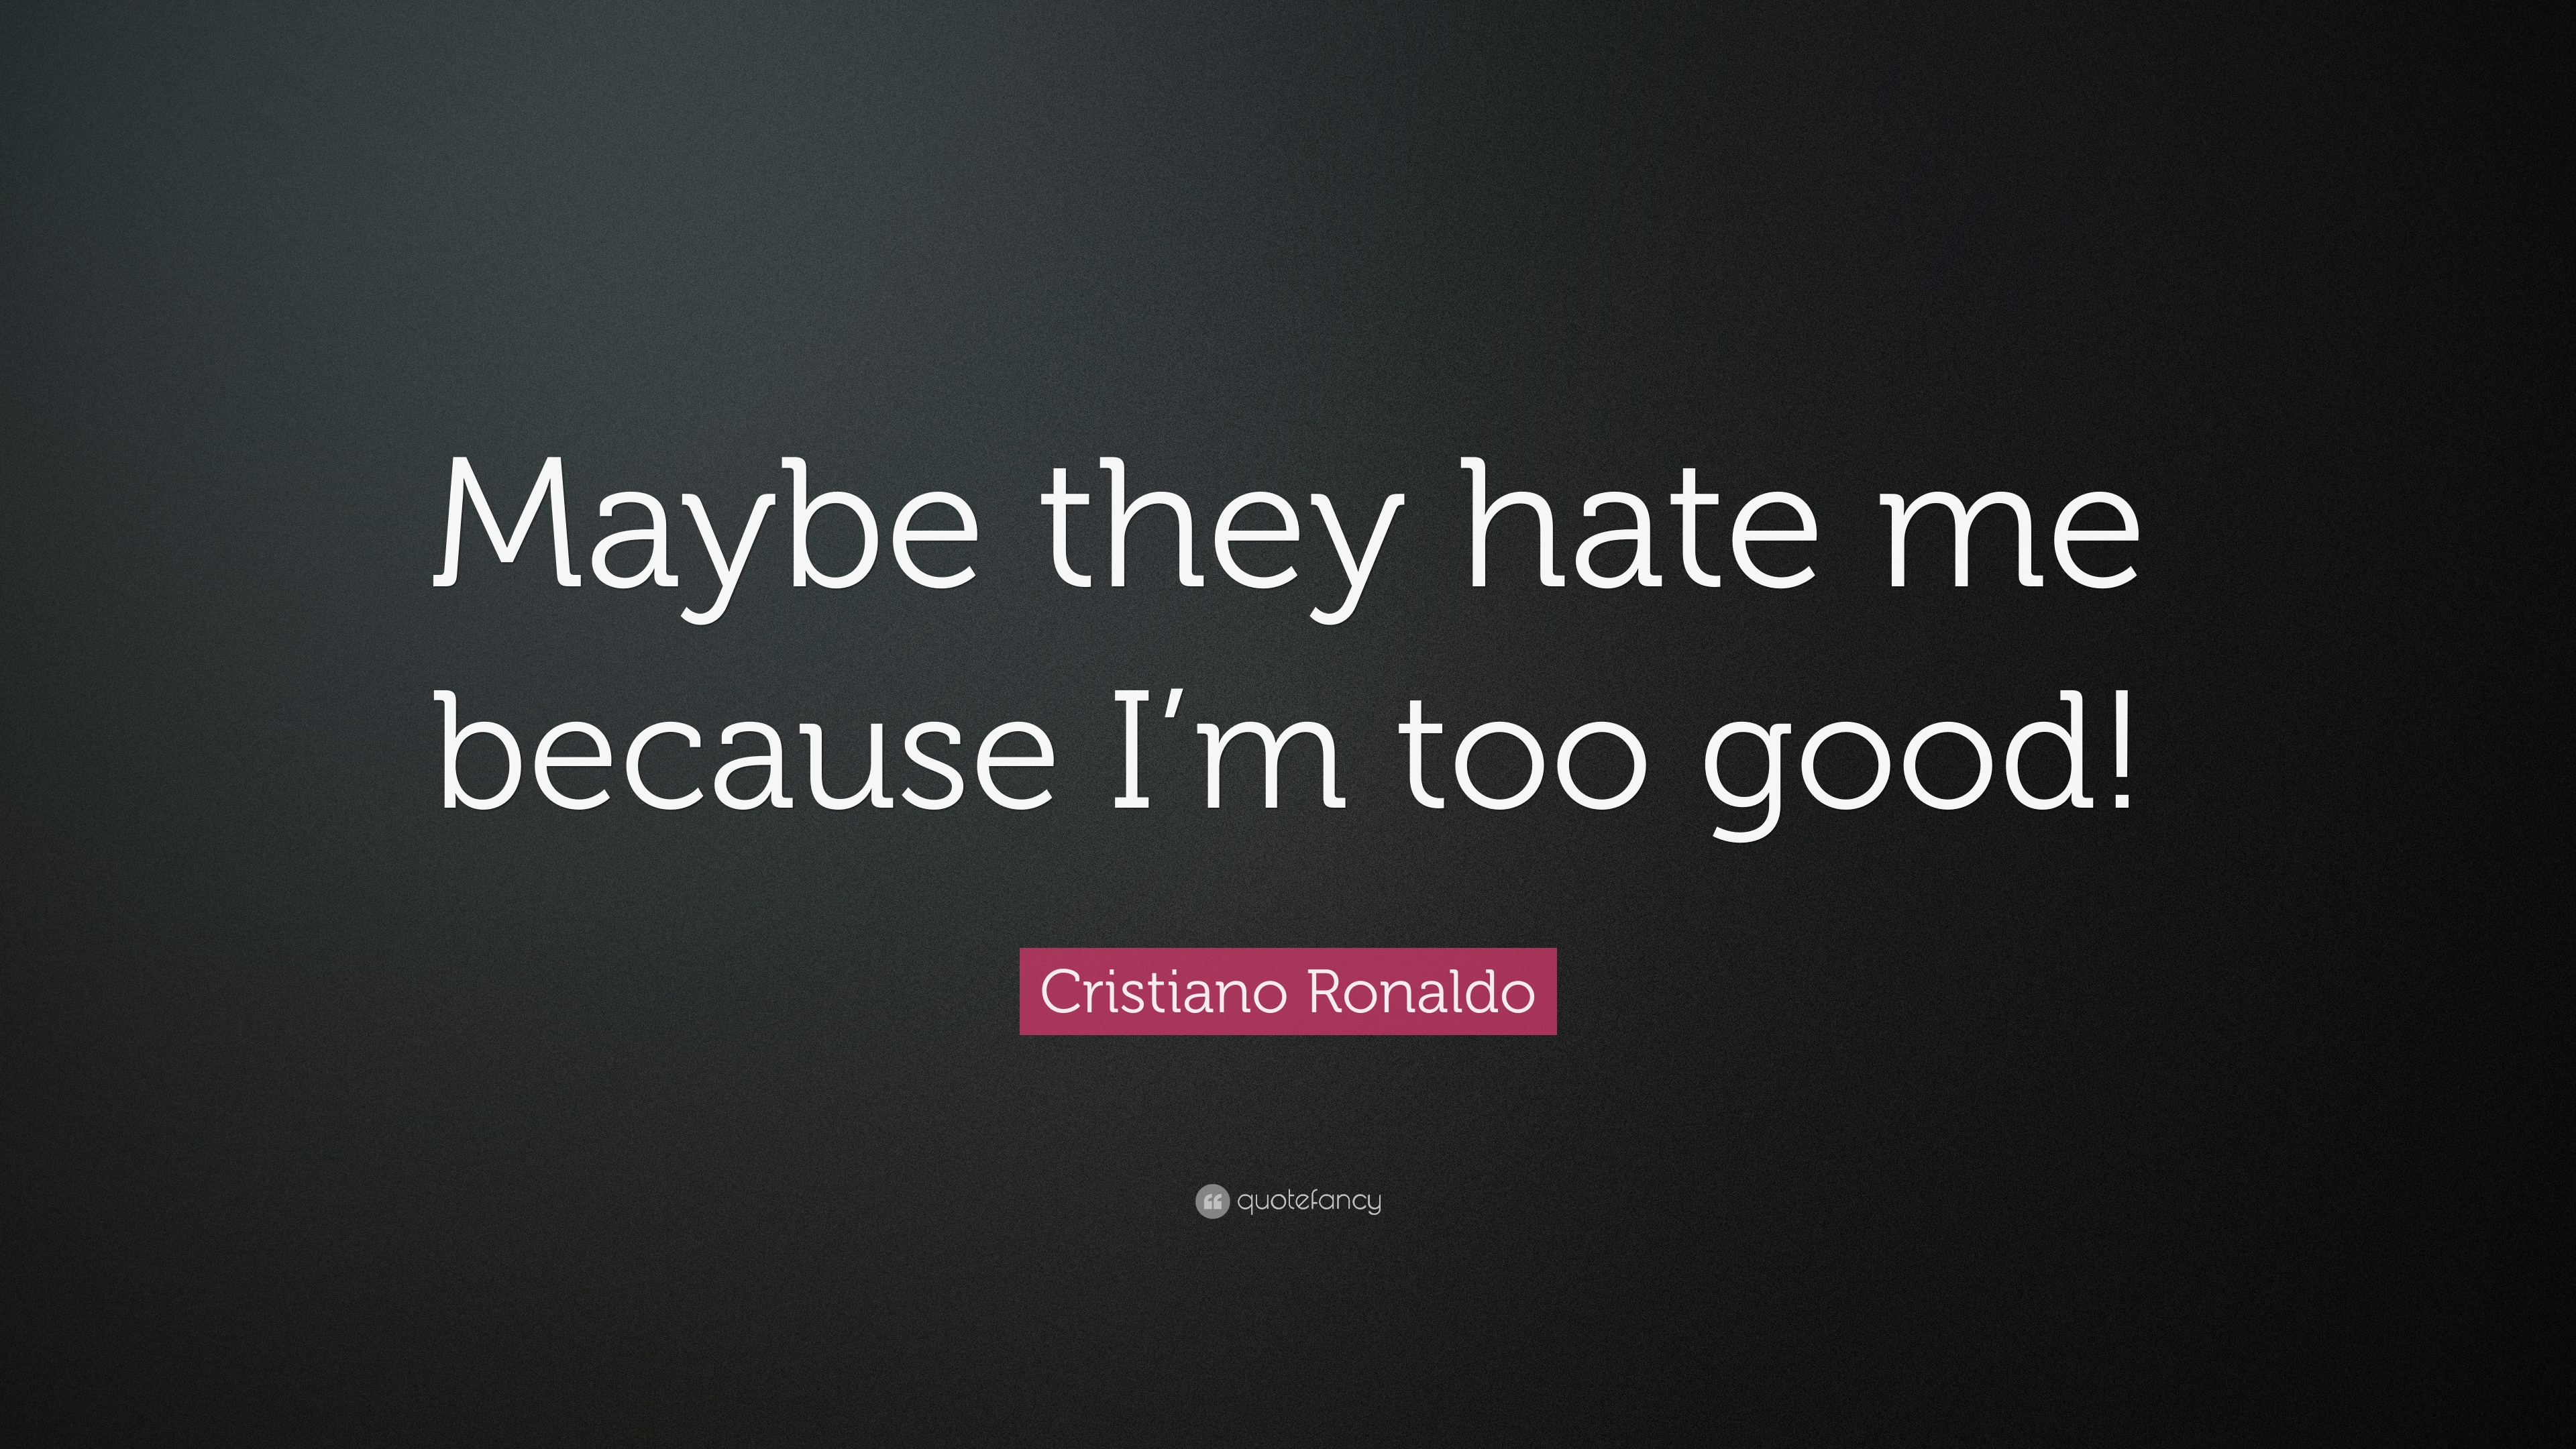 Cristiano Ronaldo Quote: U201cMaybe They Hate Me Because Iu0027m Too Good!